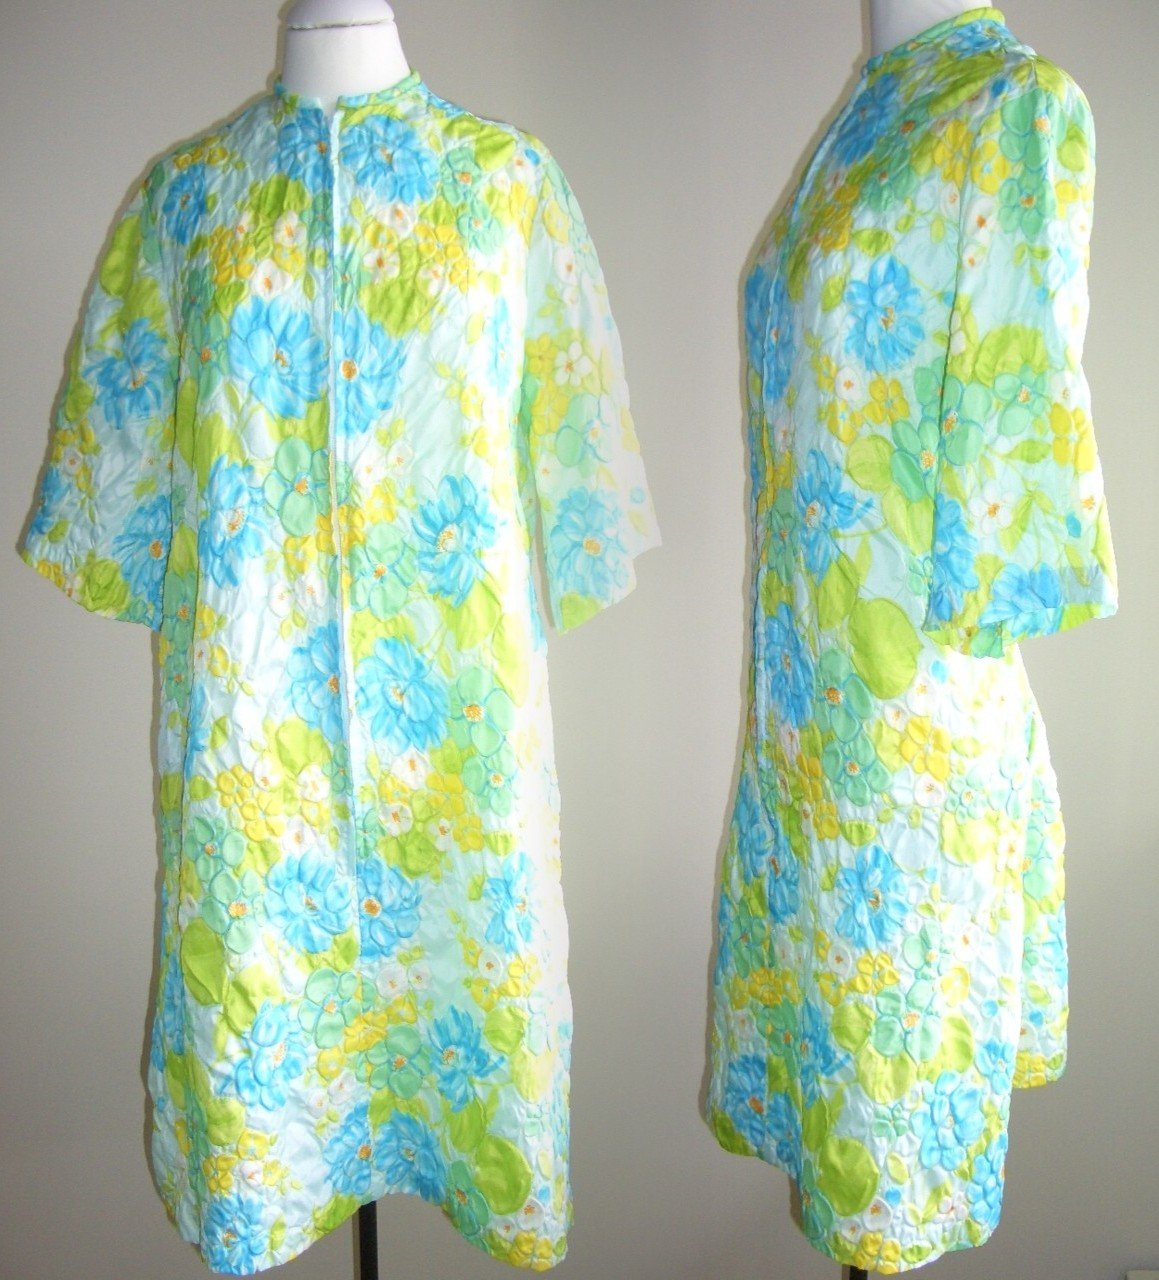 Ladylike Housecoat Dressing Gown Robe Blue Yellow Green Floral Cabbage Roses Popcorn